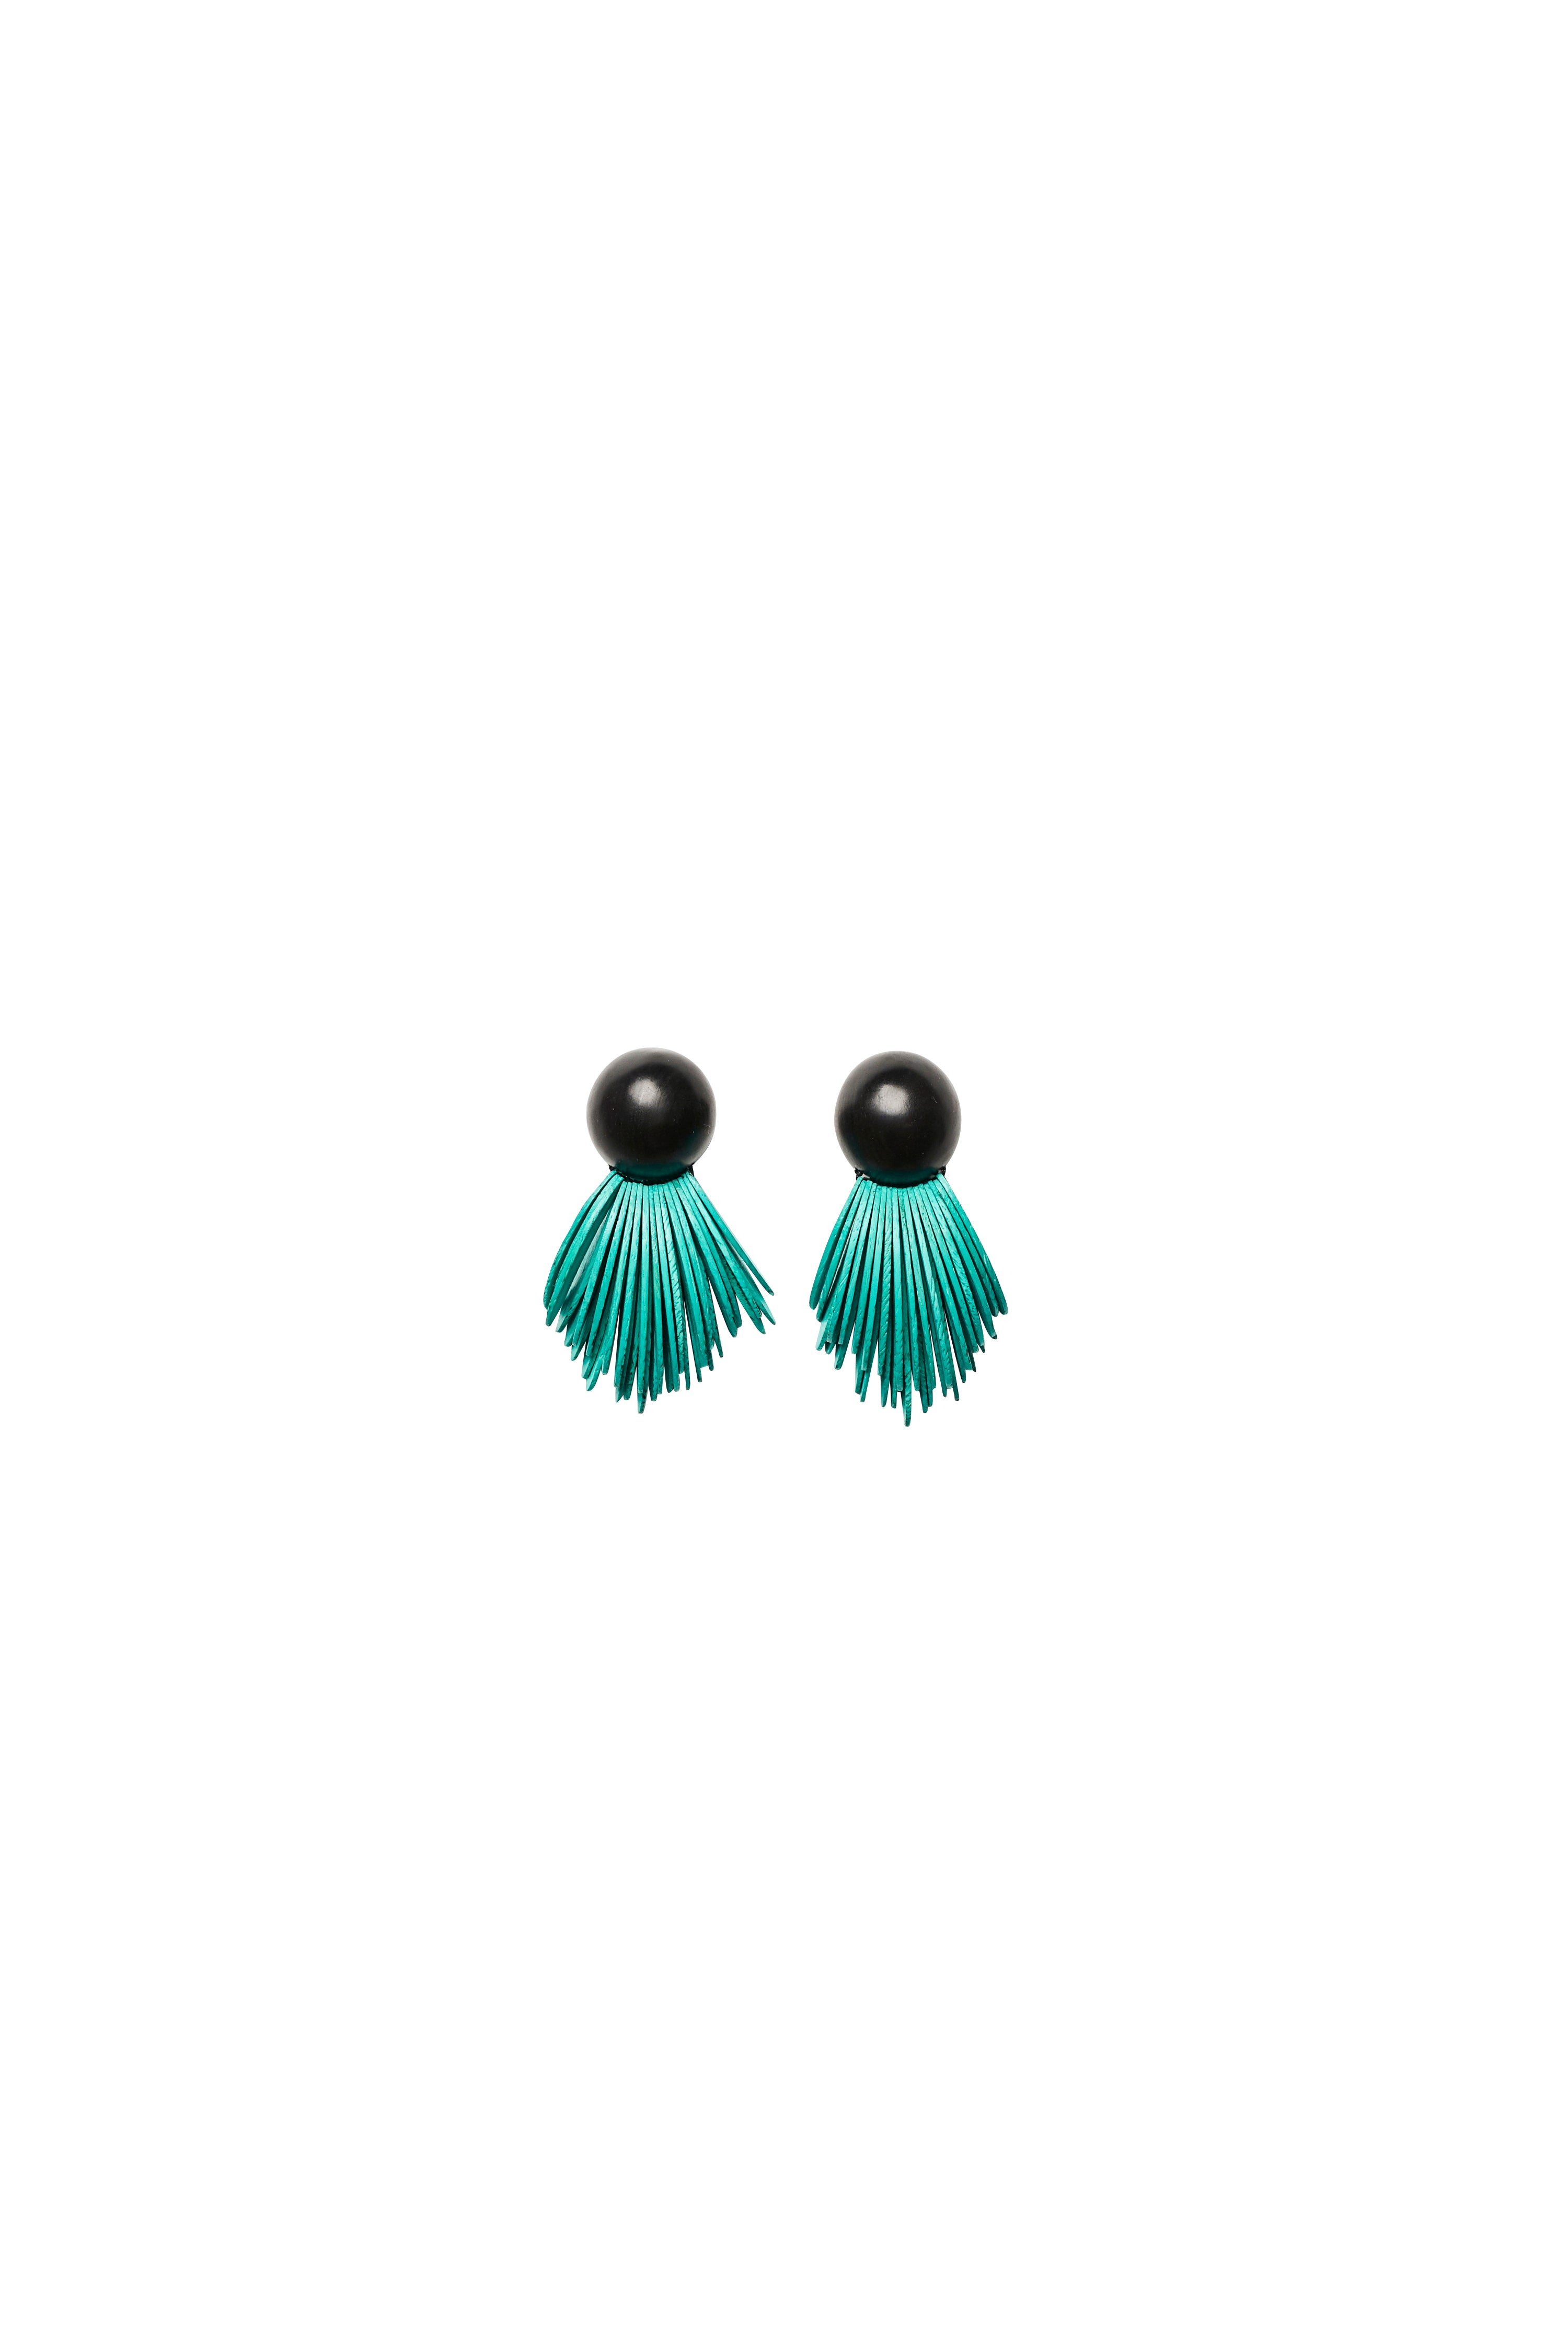 Earrings in turquoise acacia